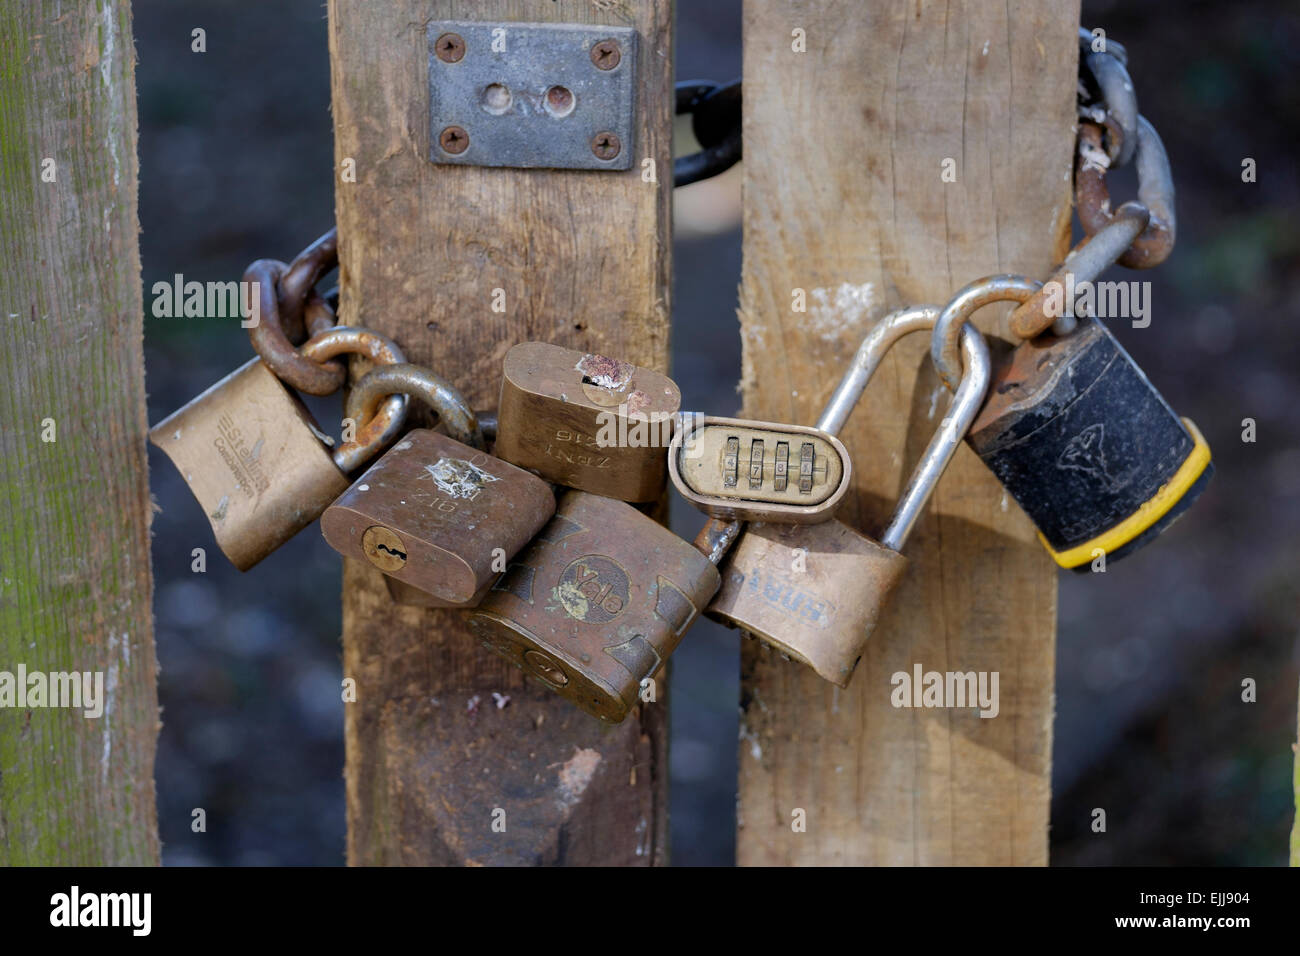 seven padlocks and chain used to secure wooden gates - Stock Image